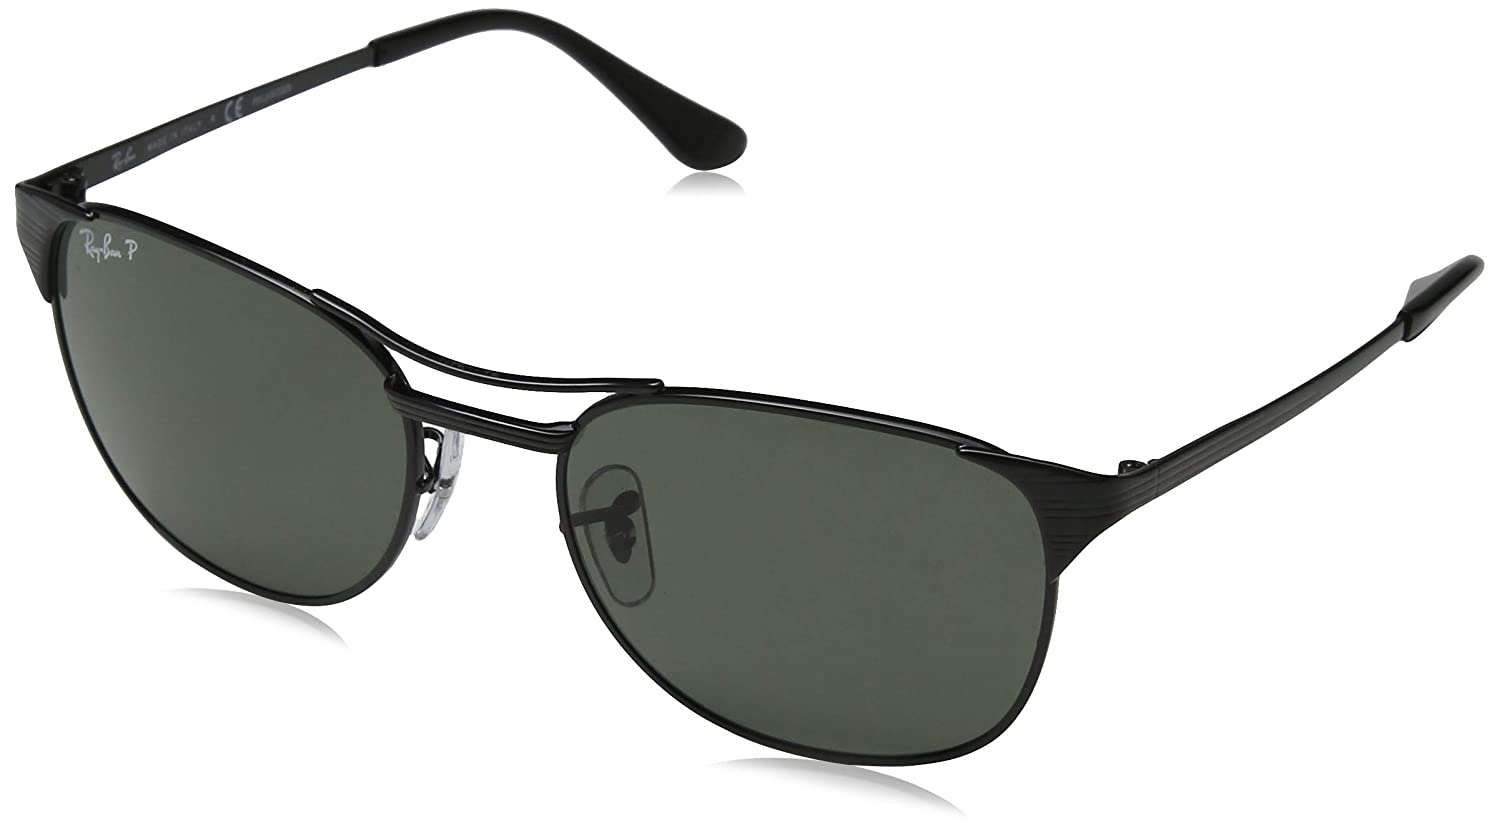 1e3ba132bd Amazon.com  Ray-Ban Signet RB3429 002 58 Sunglasses Black Frame 55mm w   Polarized Crystal Green Lens   Clothing